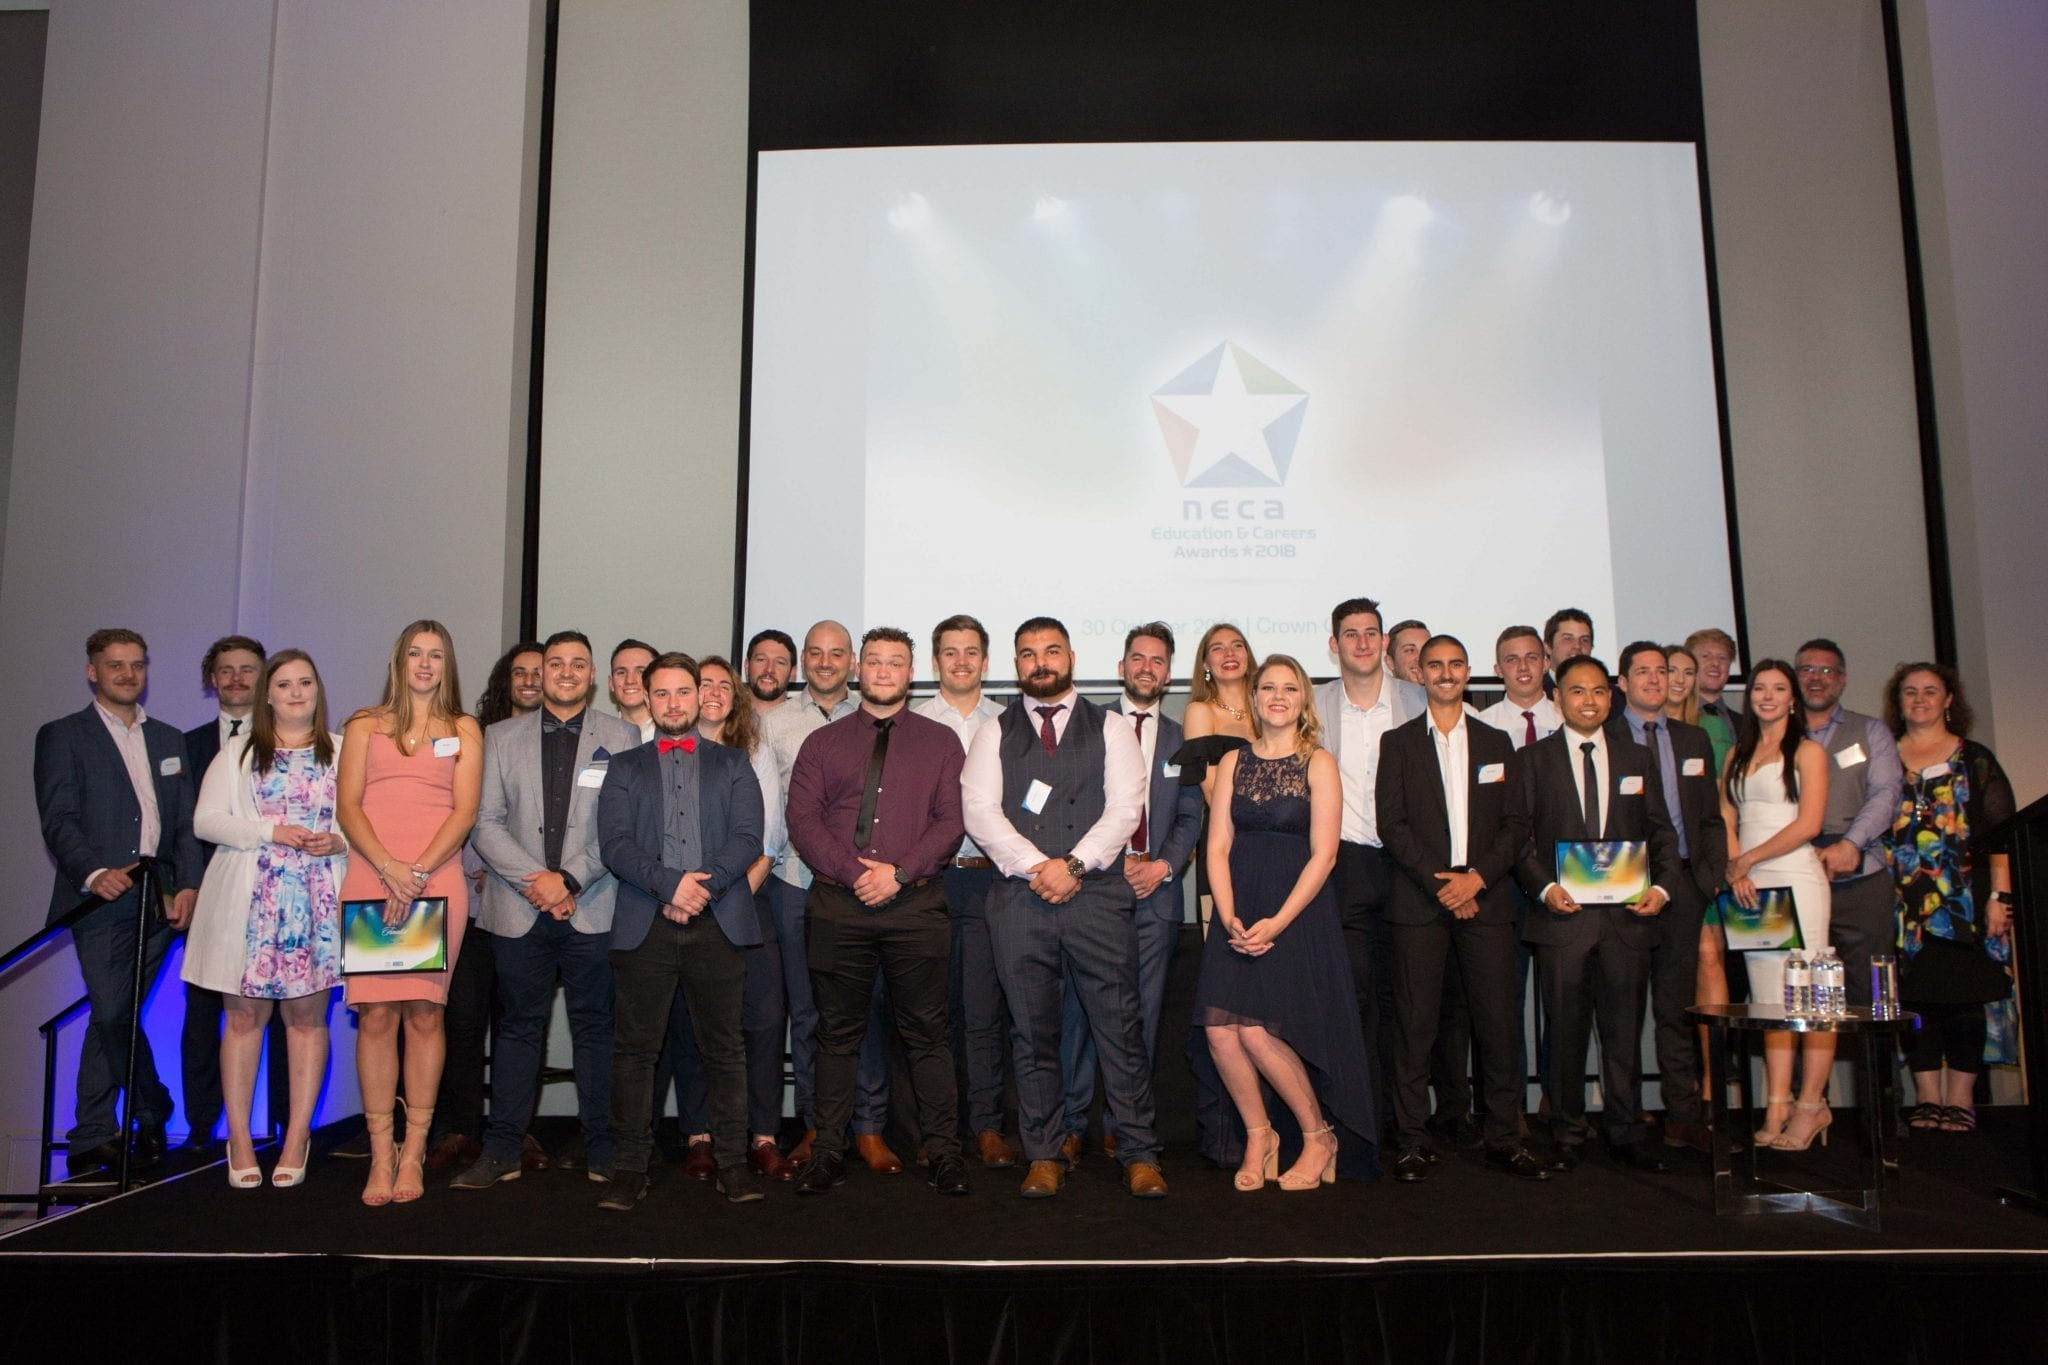 2018 nominees and award winners